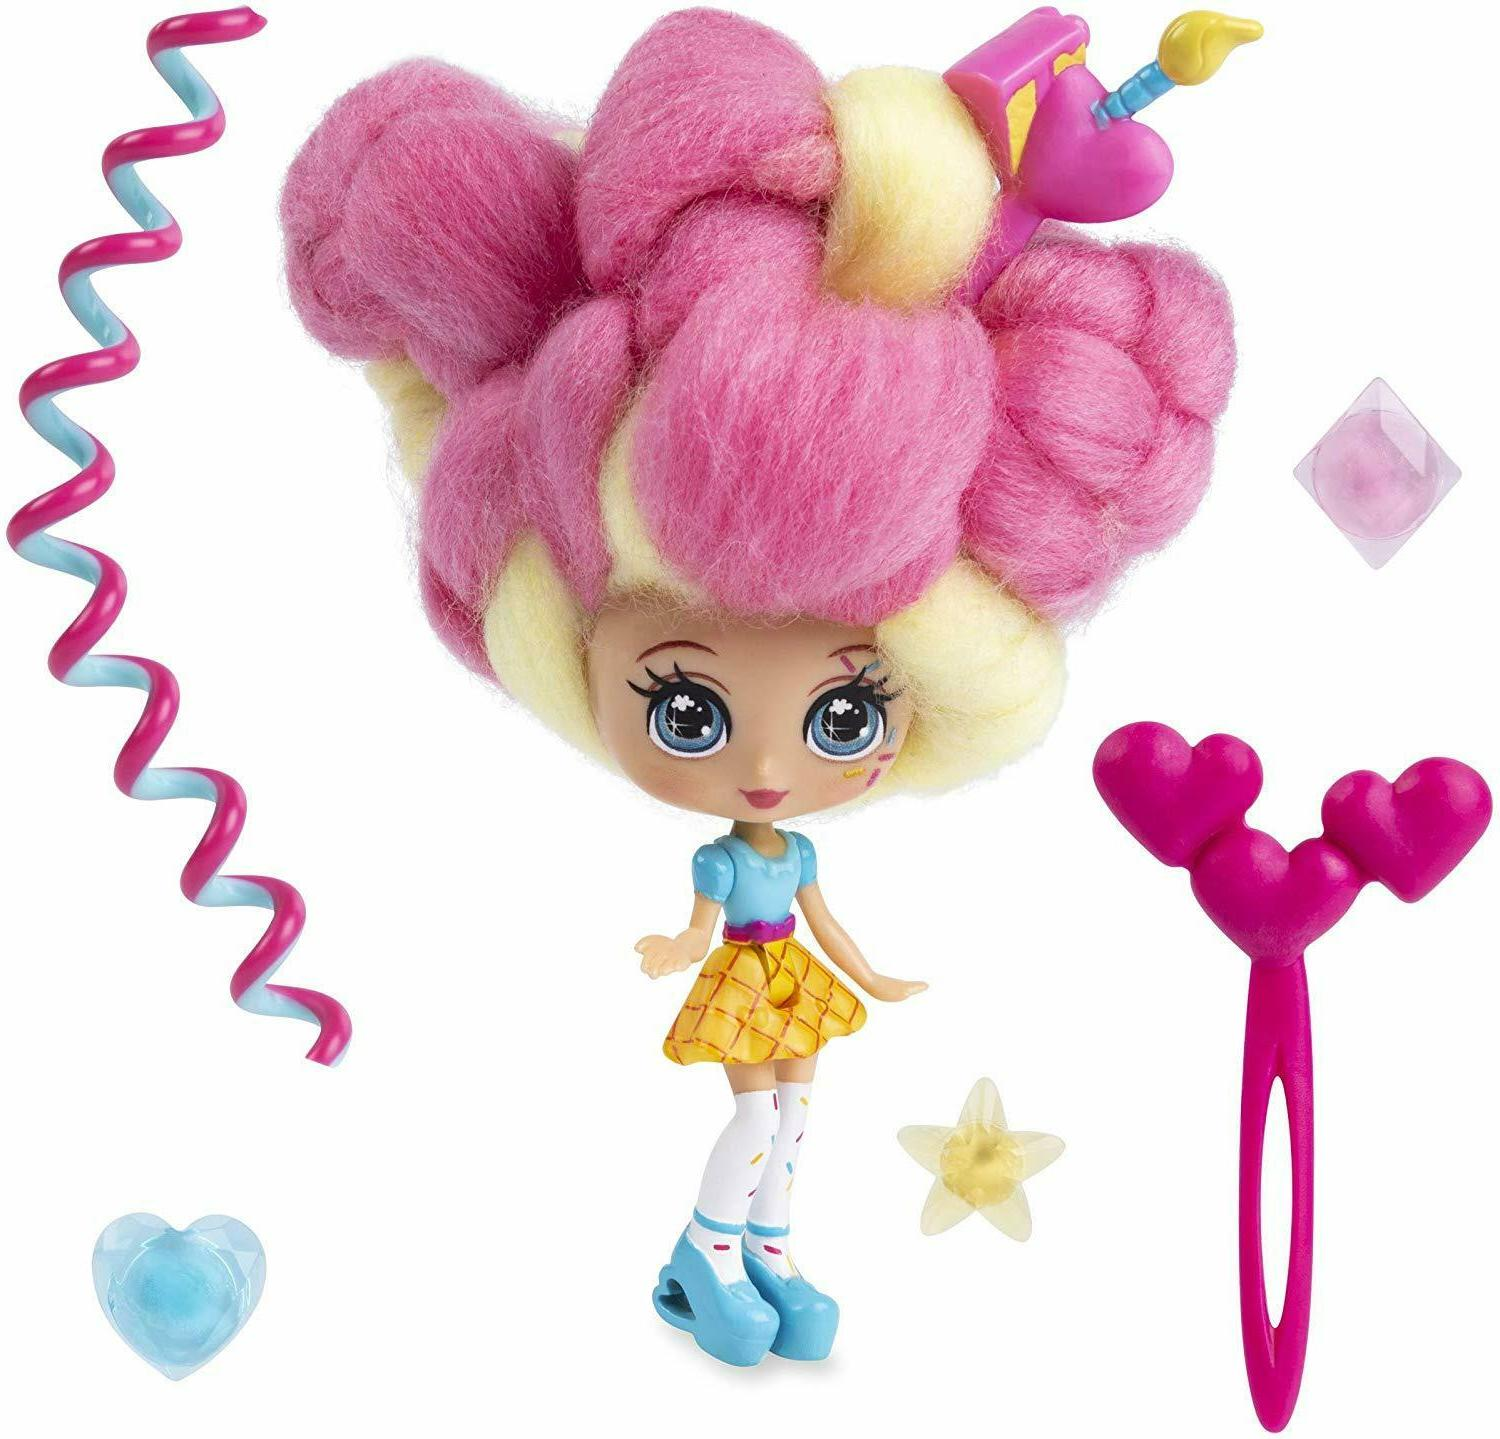 Candylocks Collectible Surprise Doll w May Vary